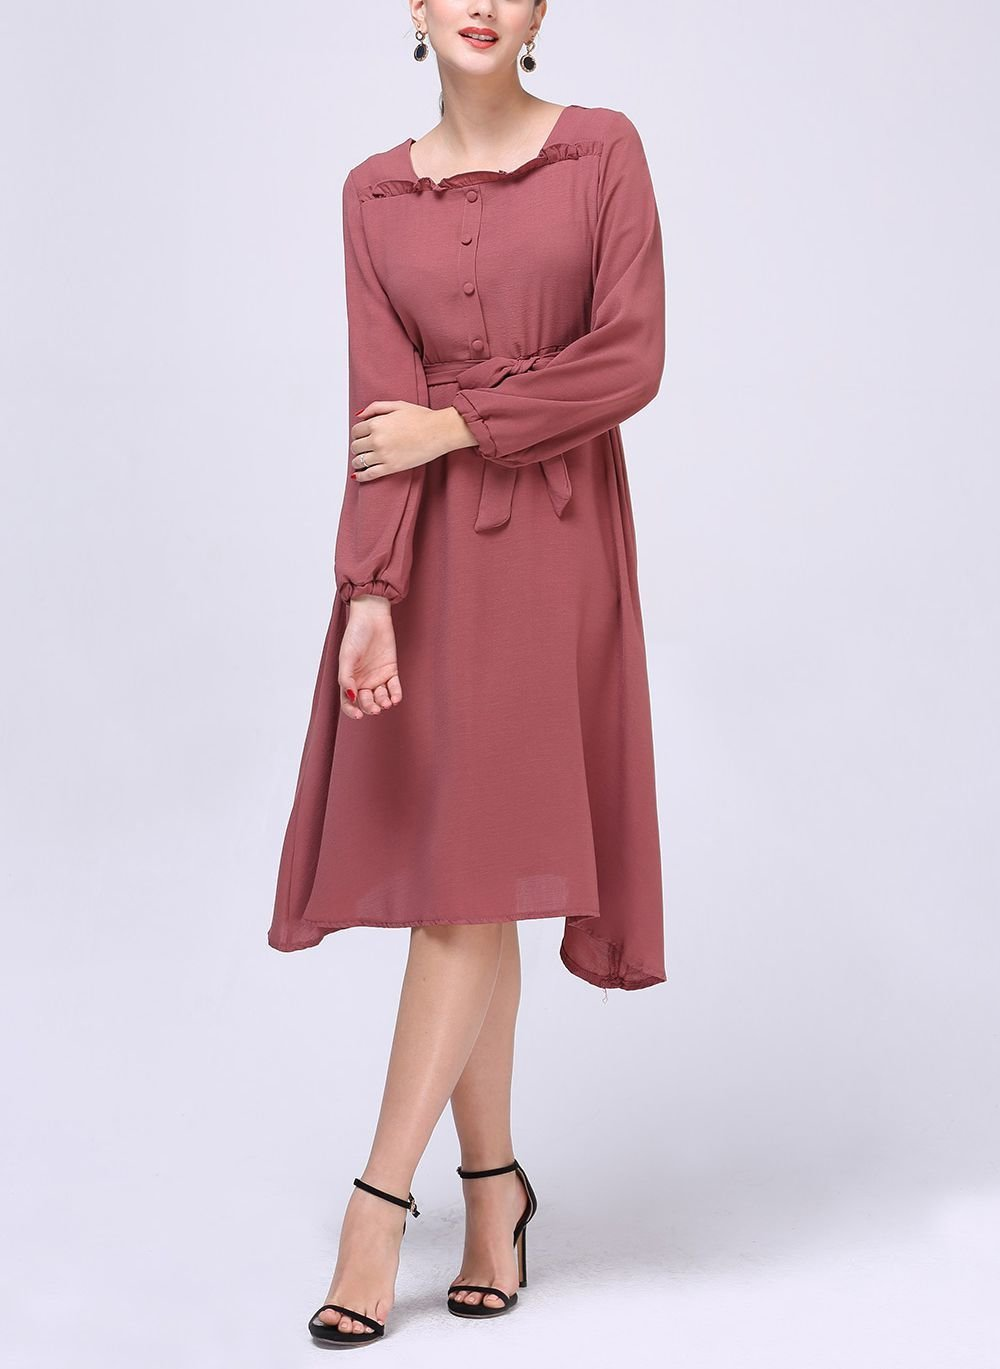 Work Dress with Square Neckline and Long Sleeves